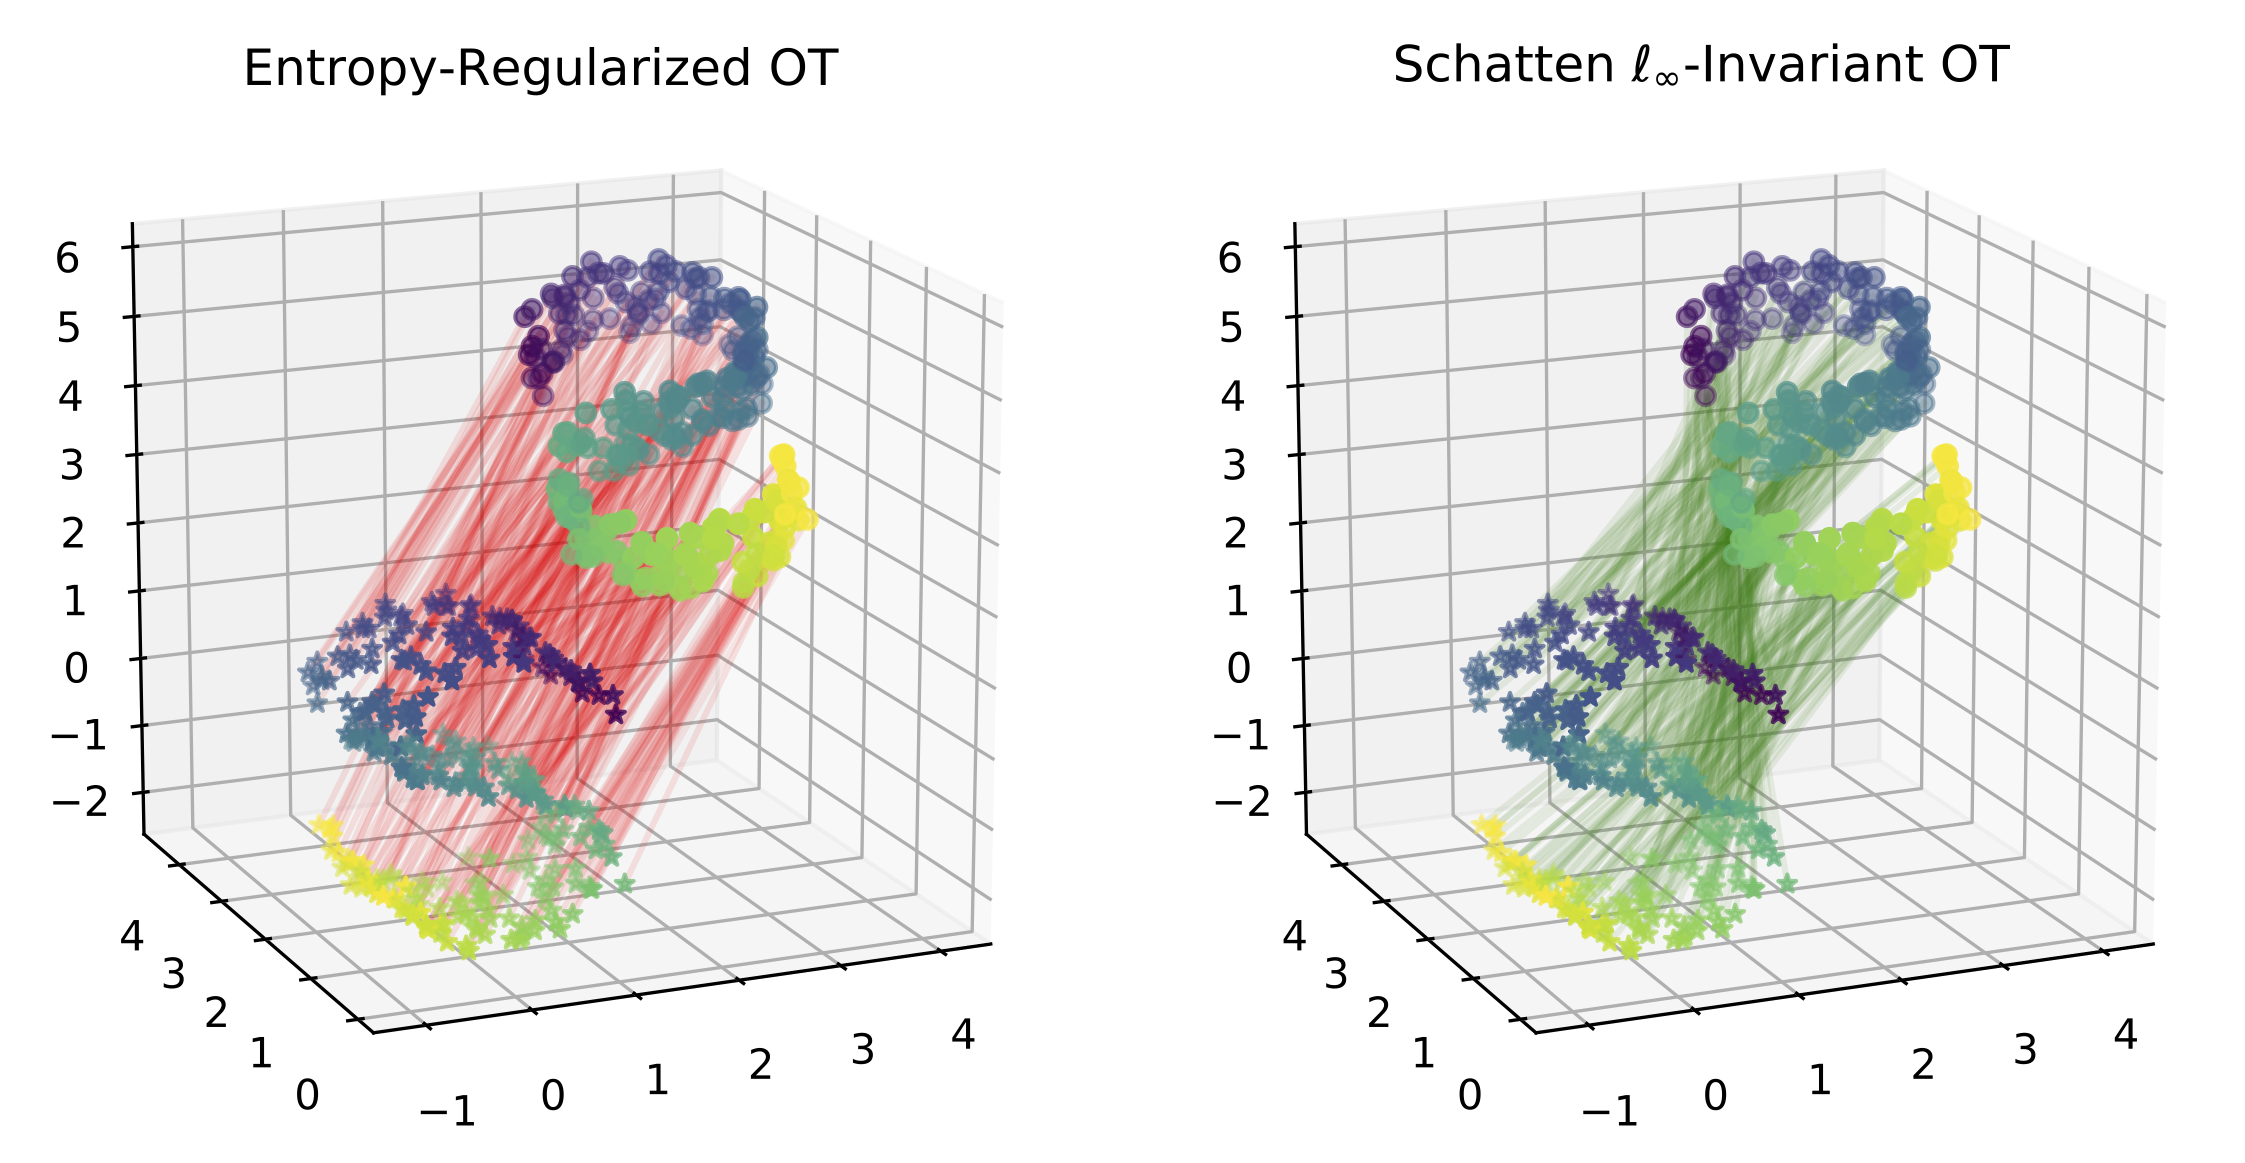 Endowing the optimal transport problem with invariance to global transformations (rotations in this case) allows it to recover correspondences in cases where the traditional formulation would not.